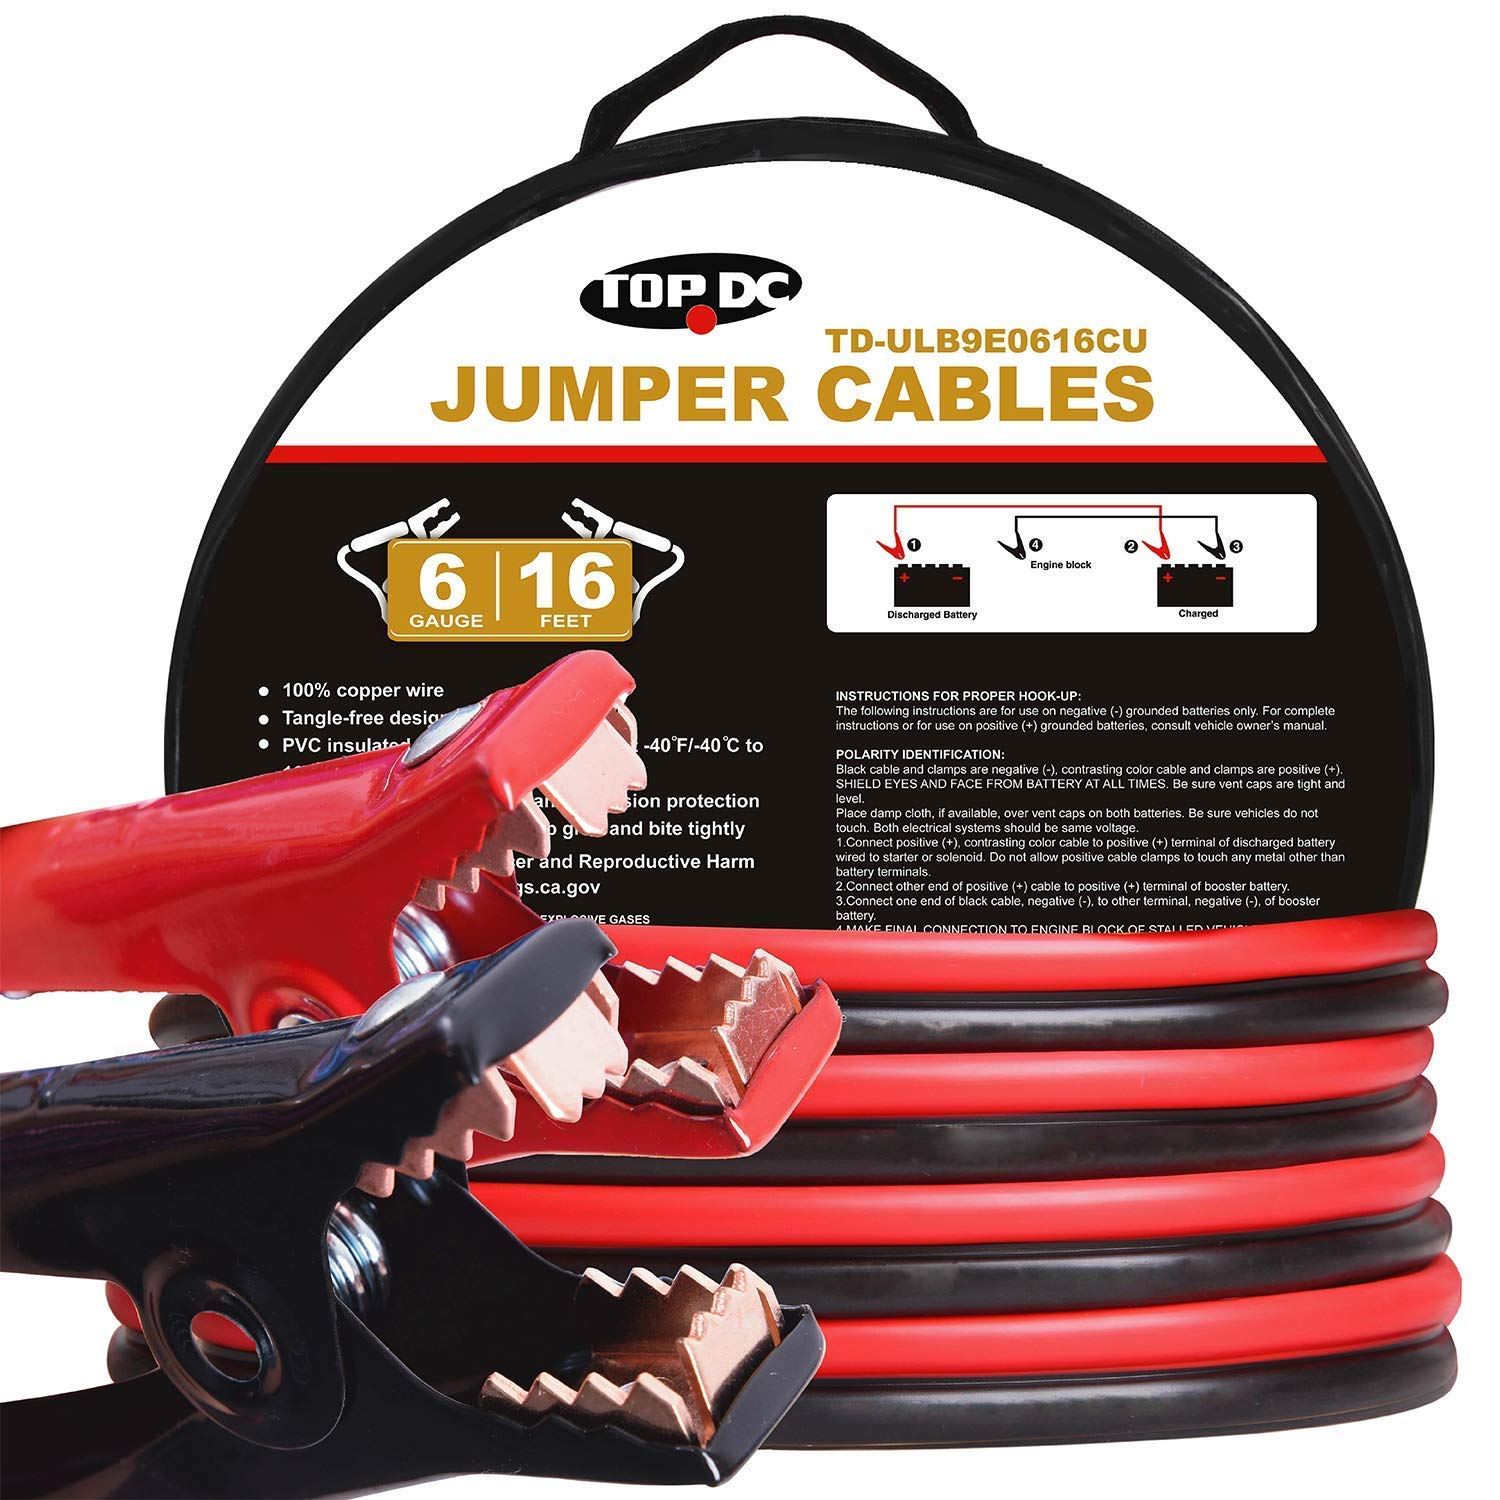 TOPDC 100% Copper Jumper Cables 6 Gauge 16 Feet 450Amp Heavy Duty Booster Cables with Carry Bag and Safety Gloves (6AWG x 16Ft) by TOPDC